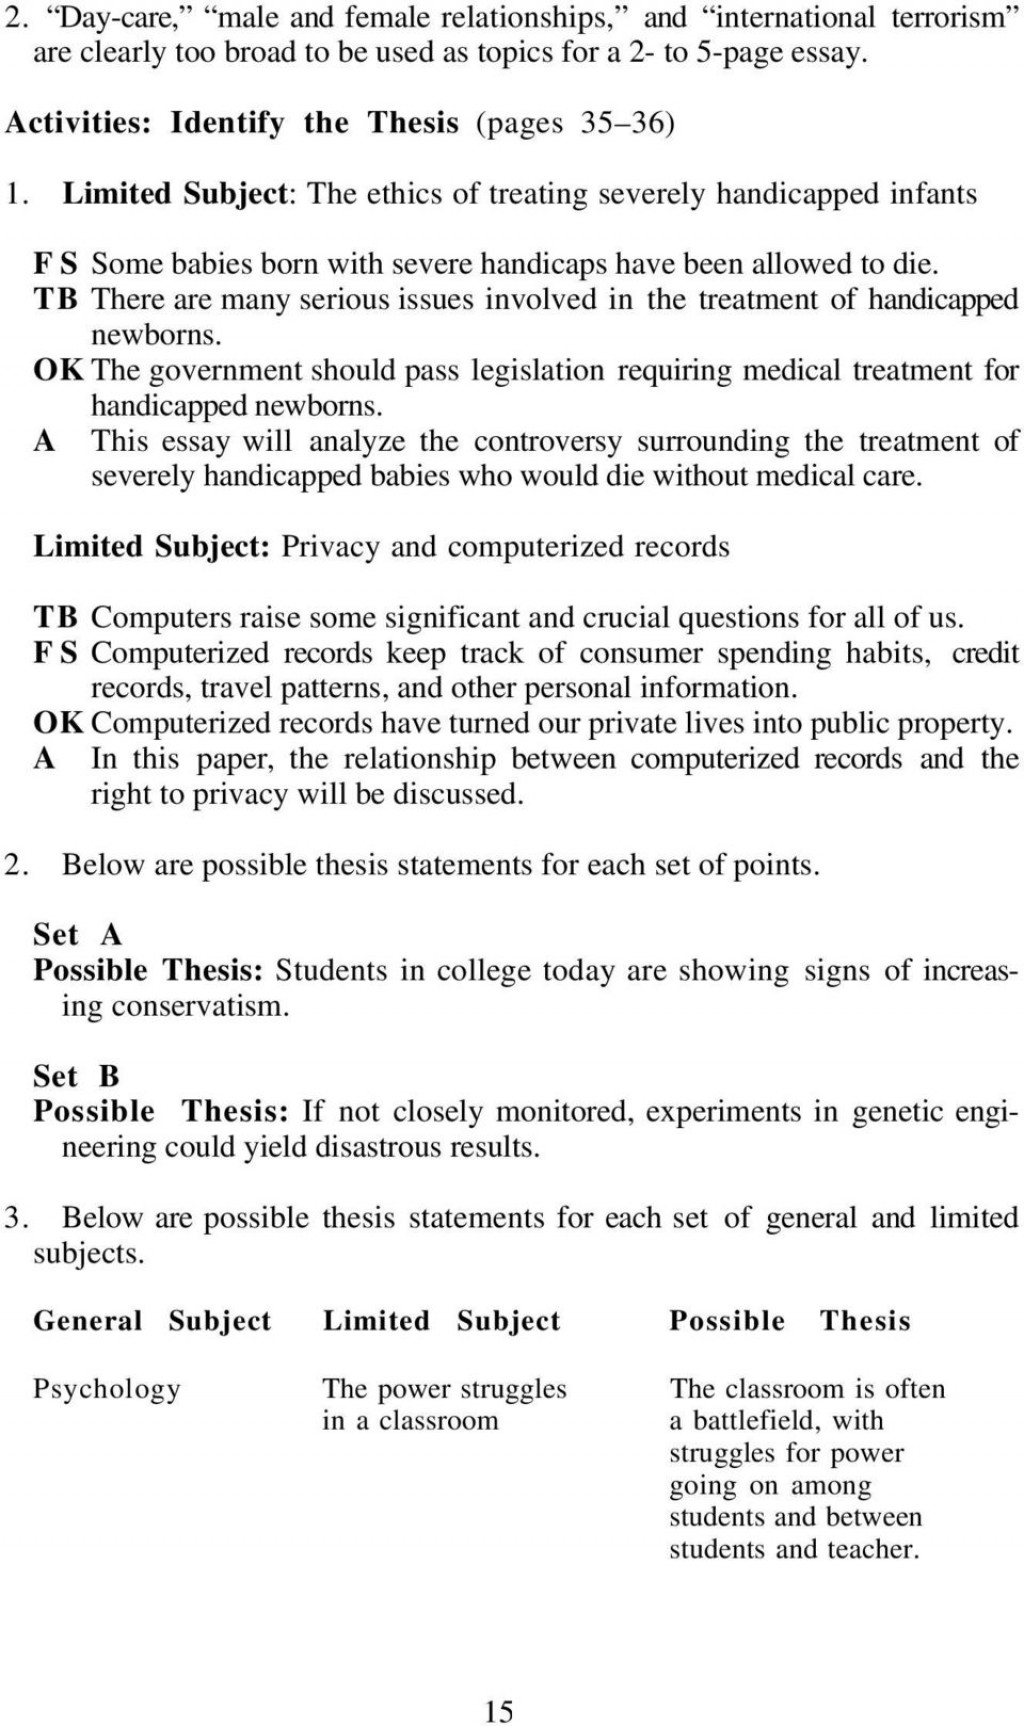 023 Page 20 Research Paper Argumentative Topics About Mental Rare Illness Health Large